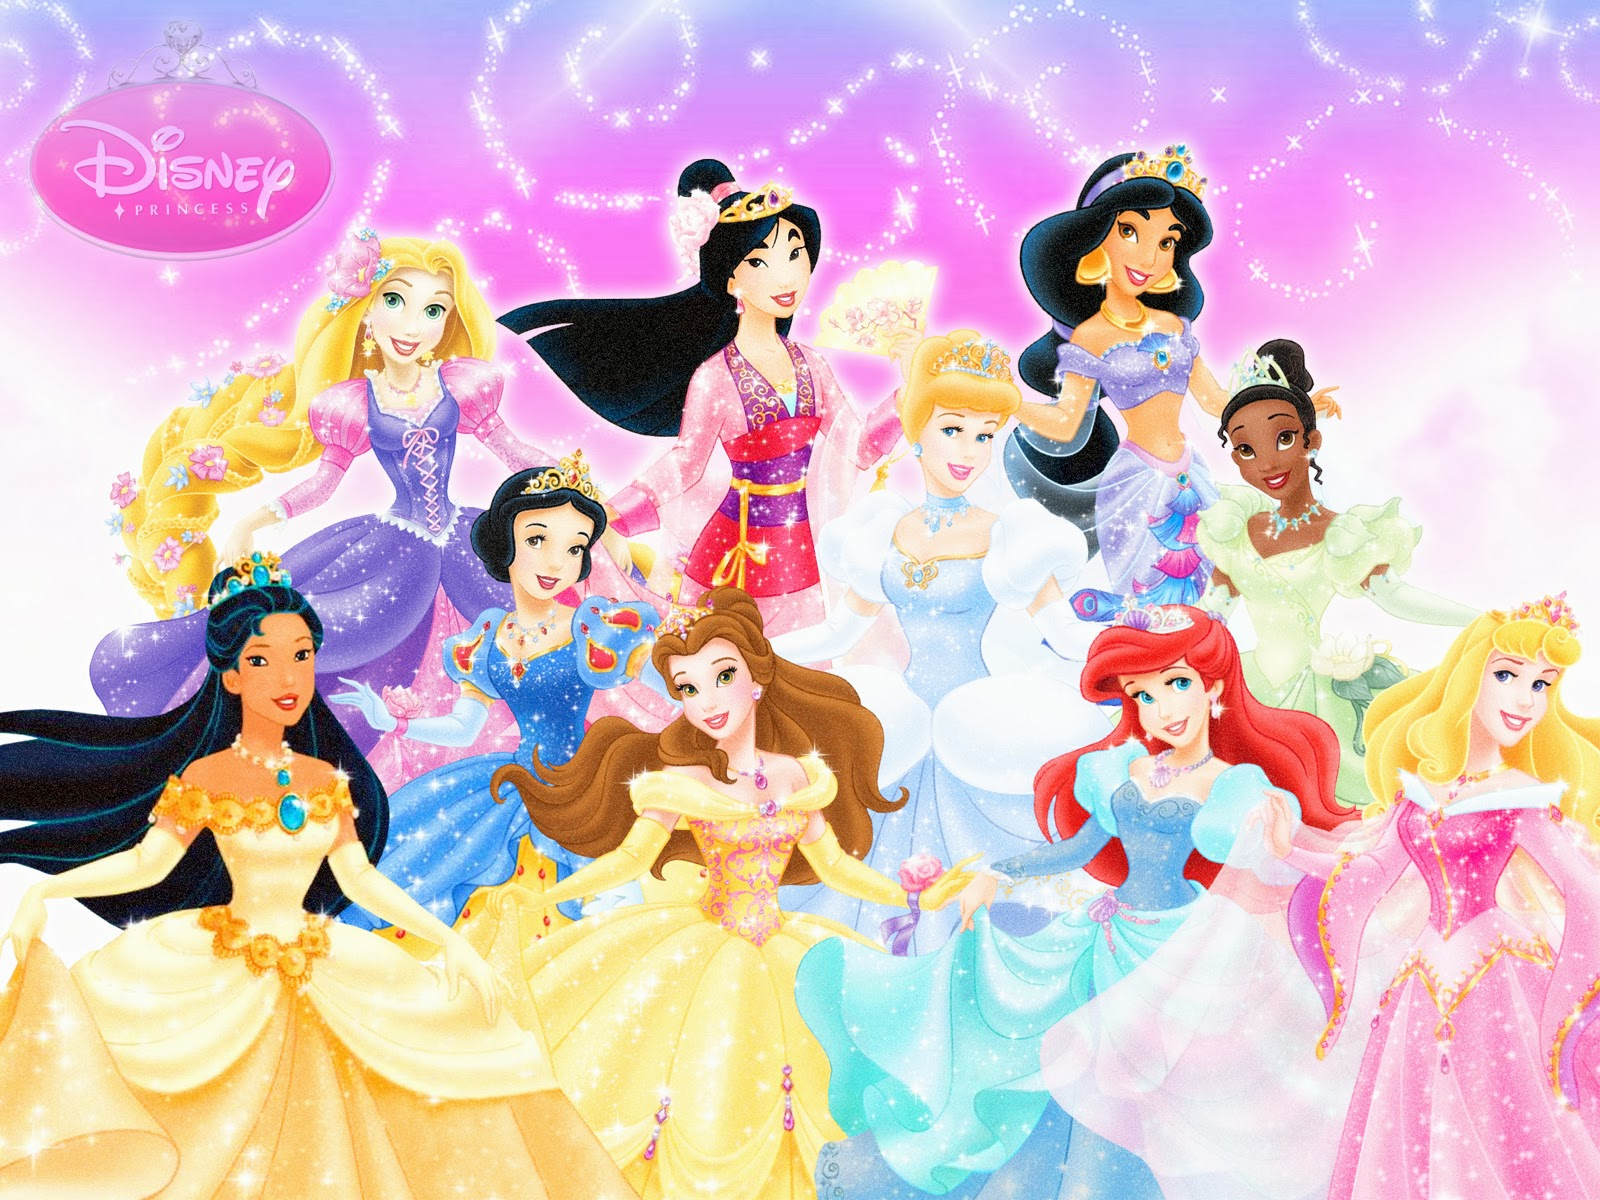 Lovely Wallpapers Disney Princess HD Wallpapers Download 1600x1200